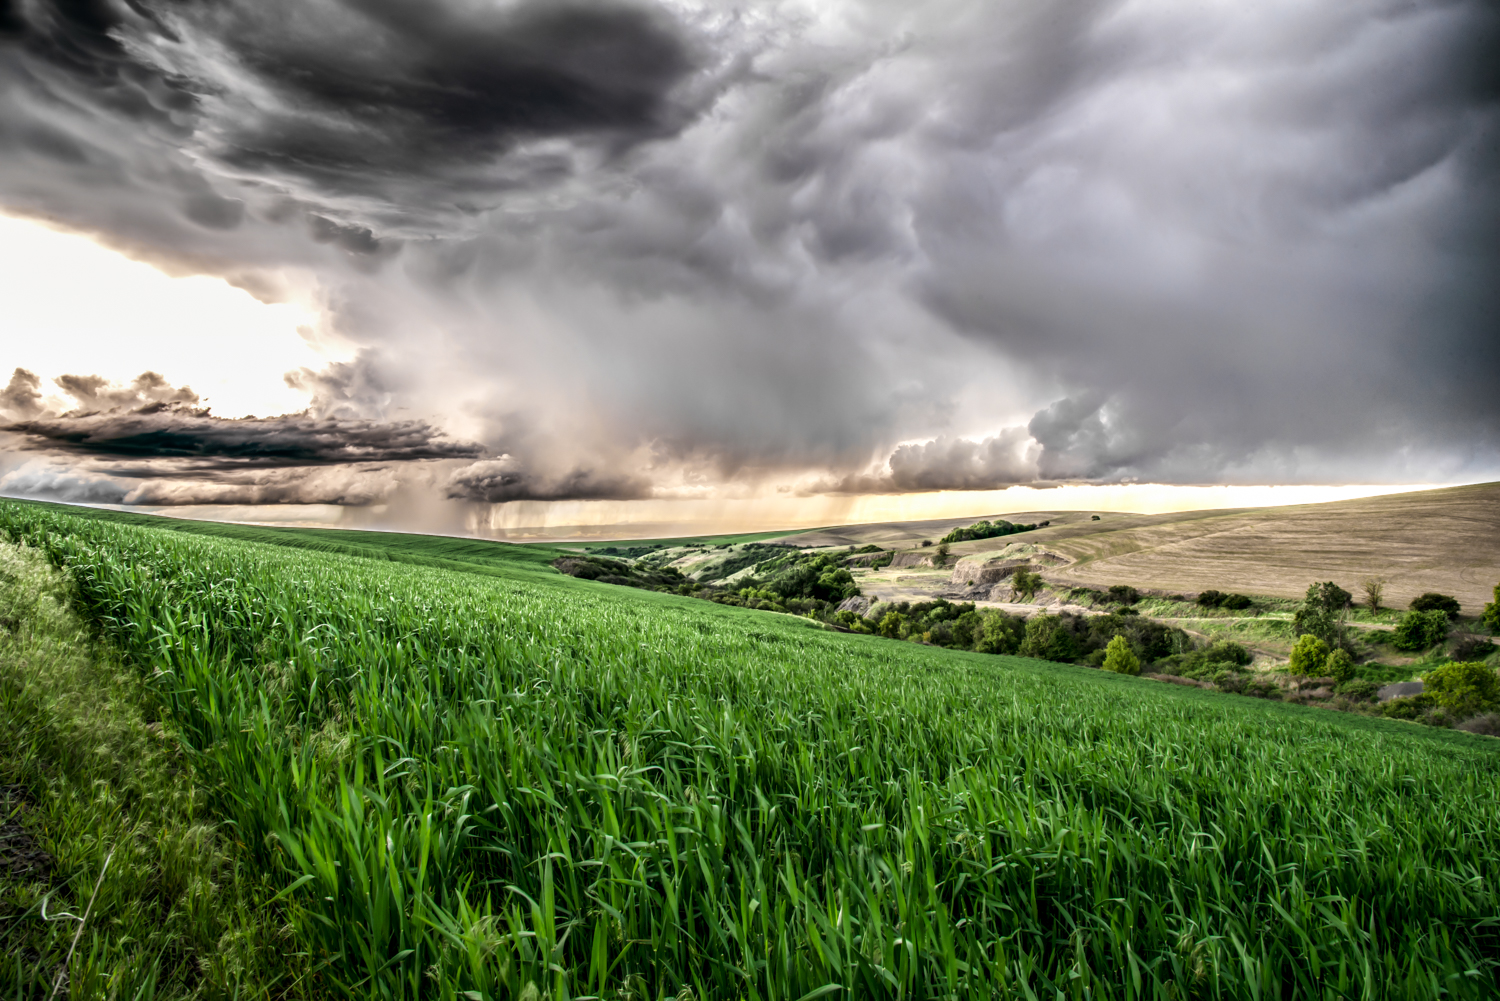 Stormy Skies and Summer Wheat Fields